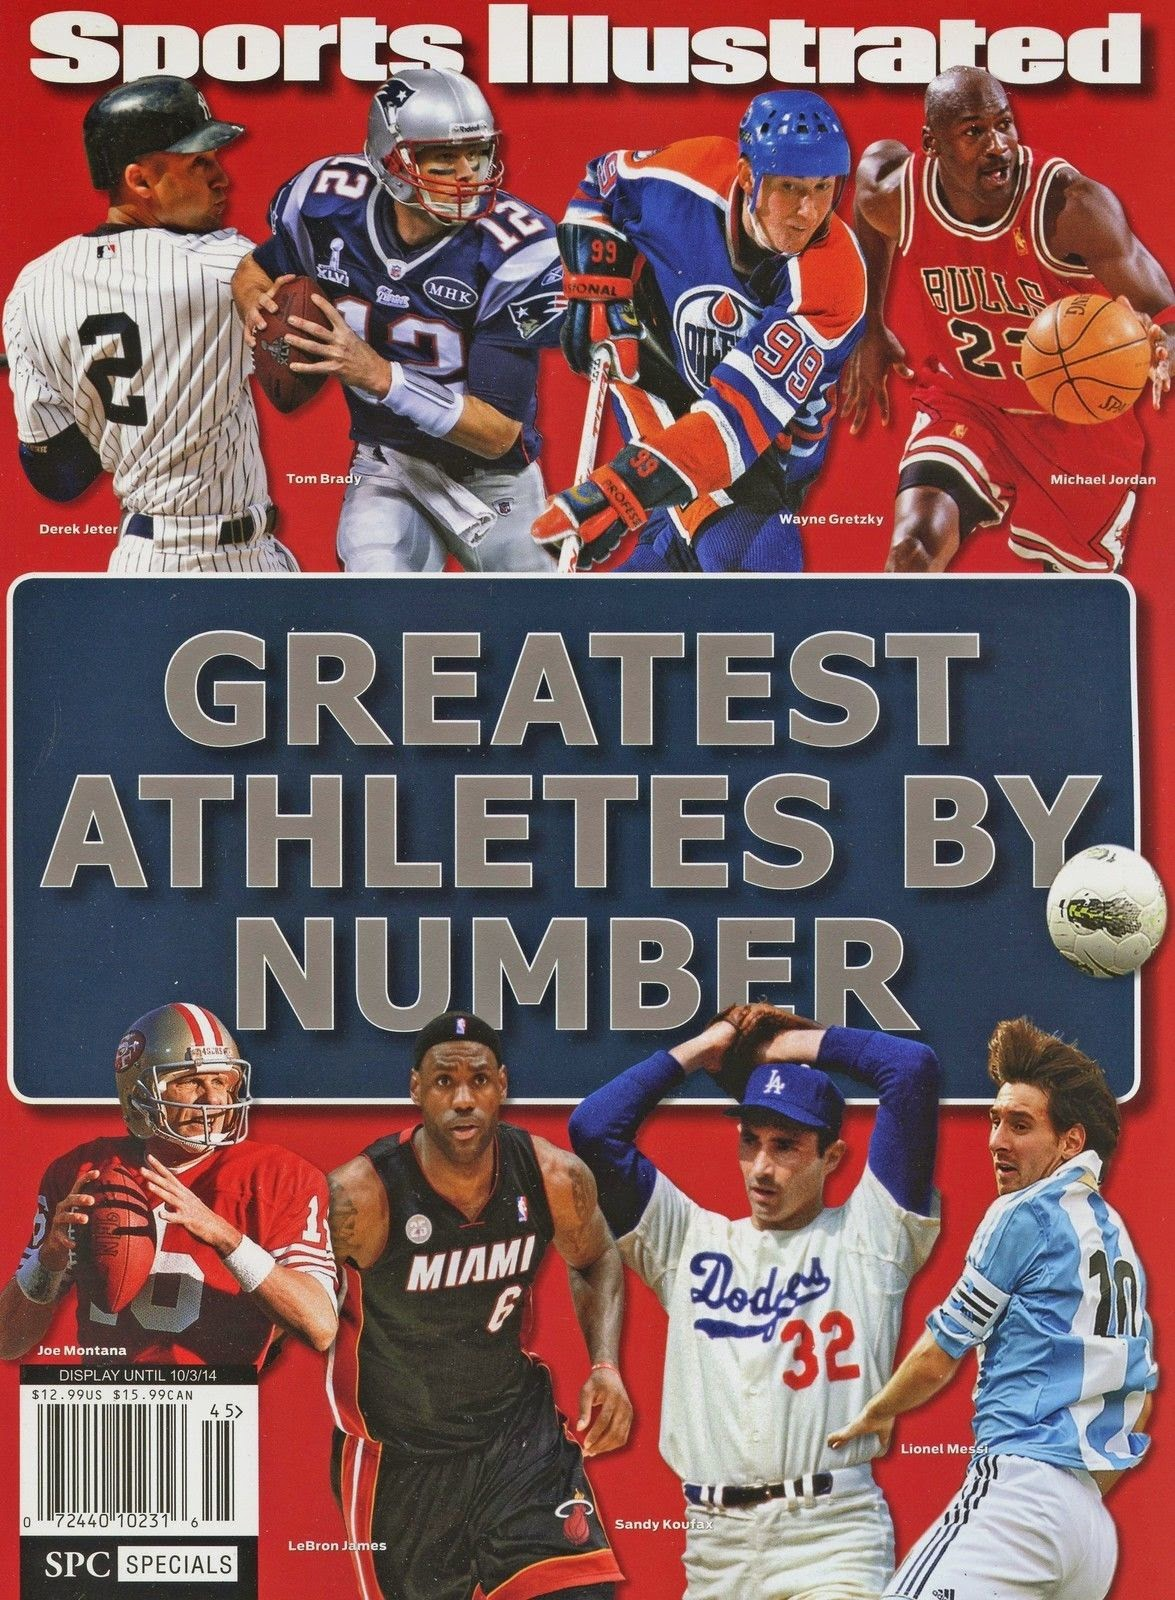 Debate: Greatest Athletes By Number According To Sports Illustrated